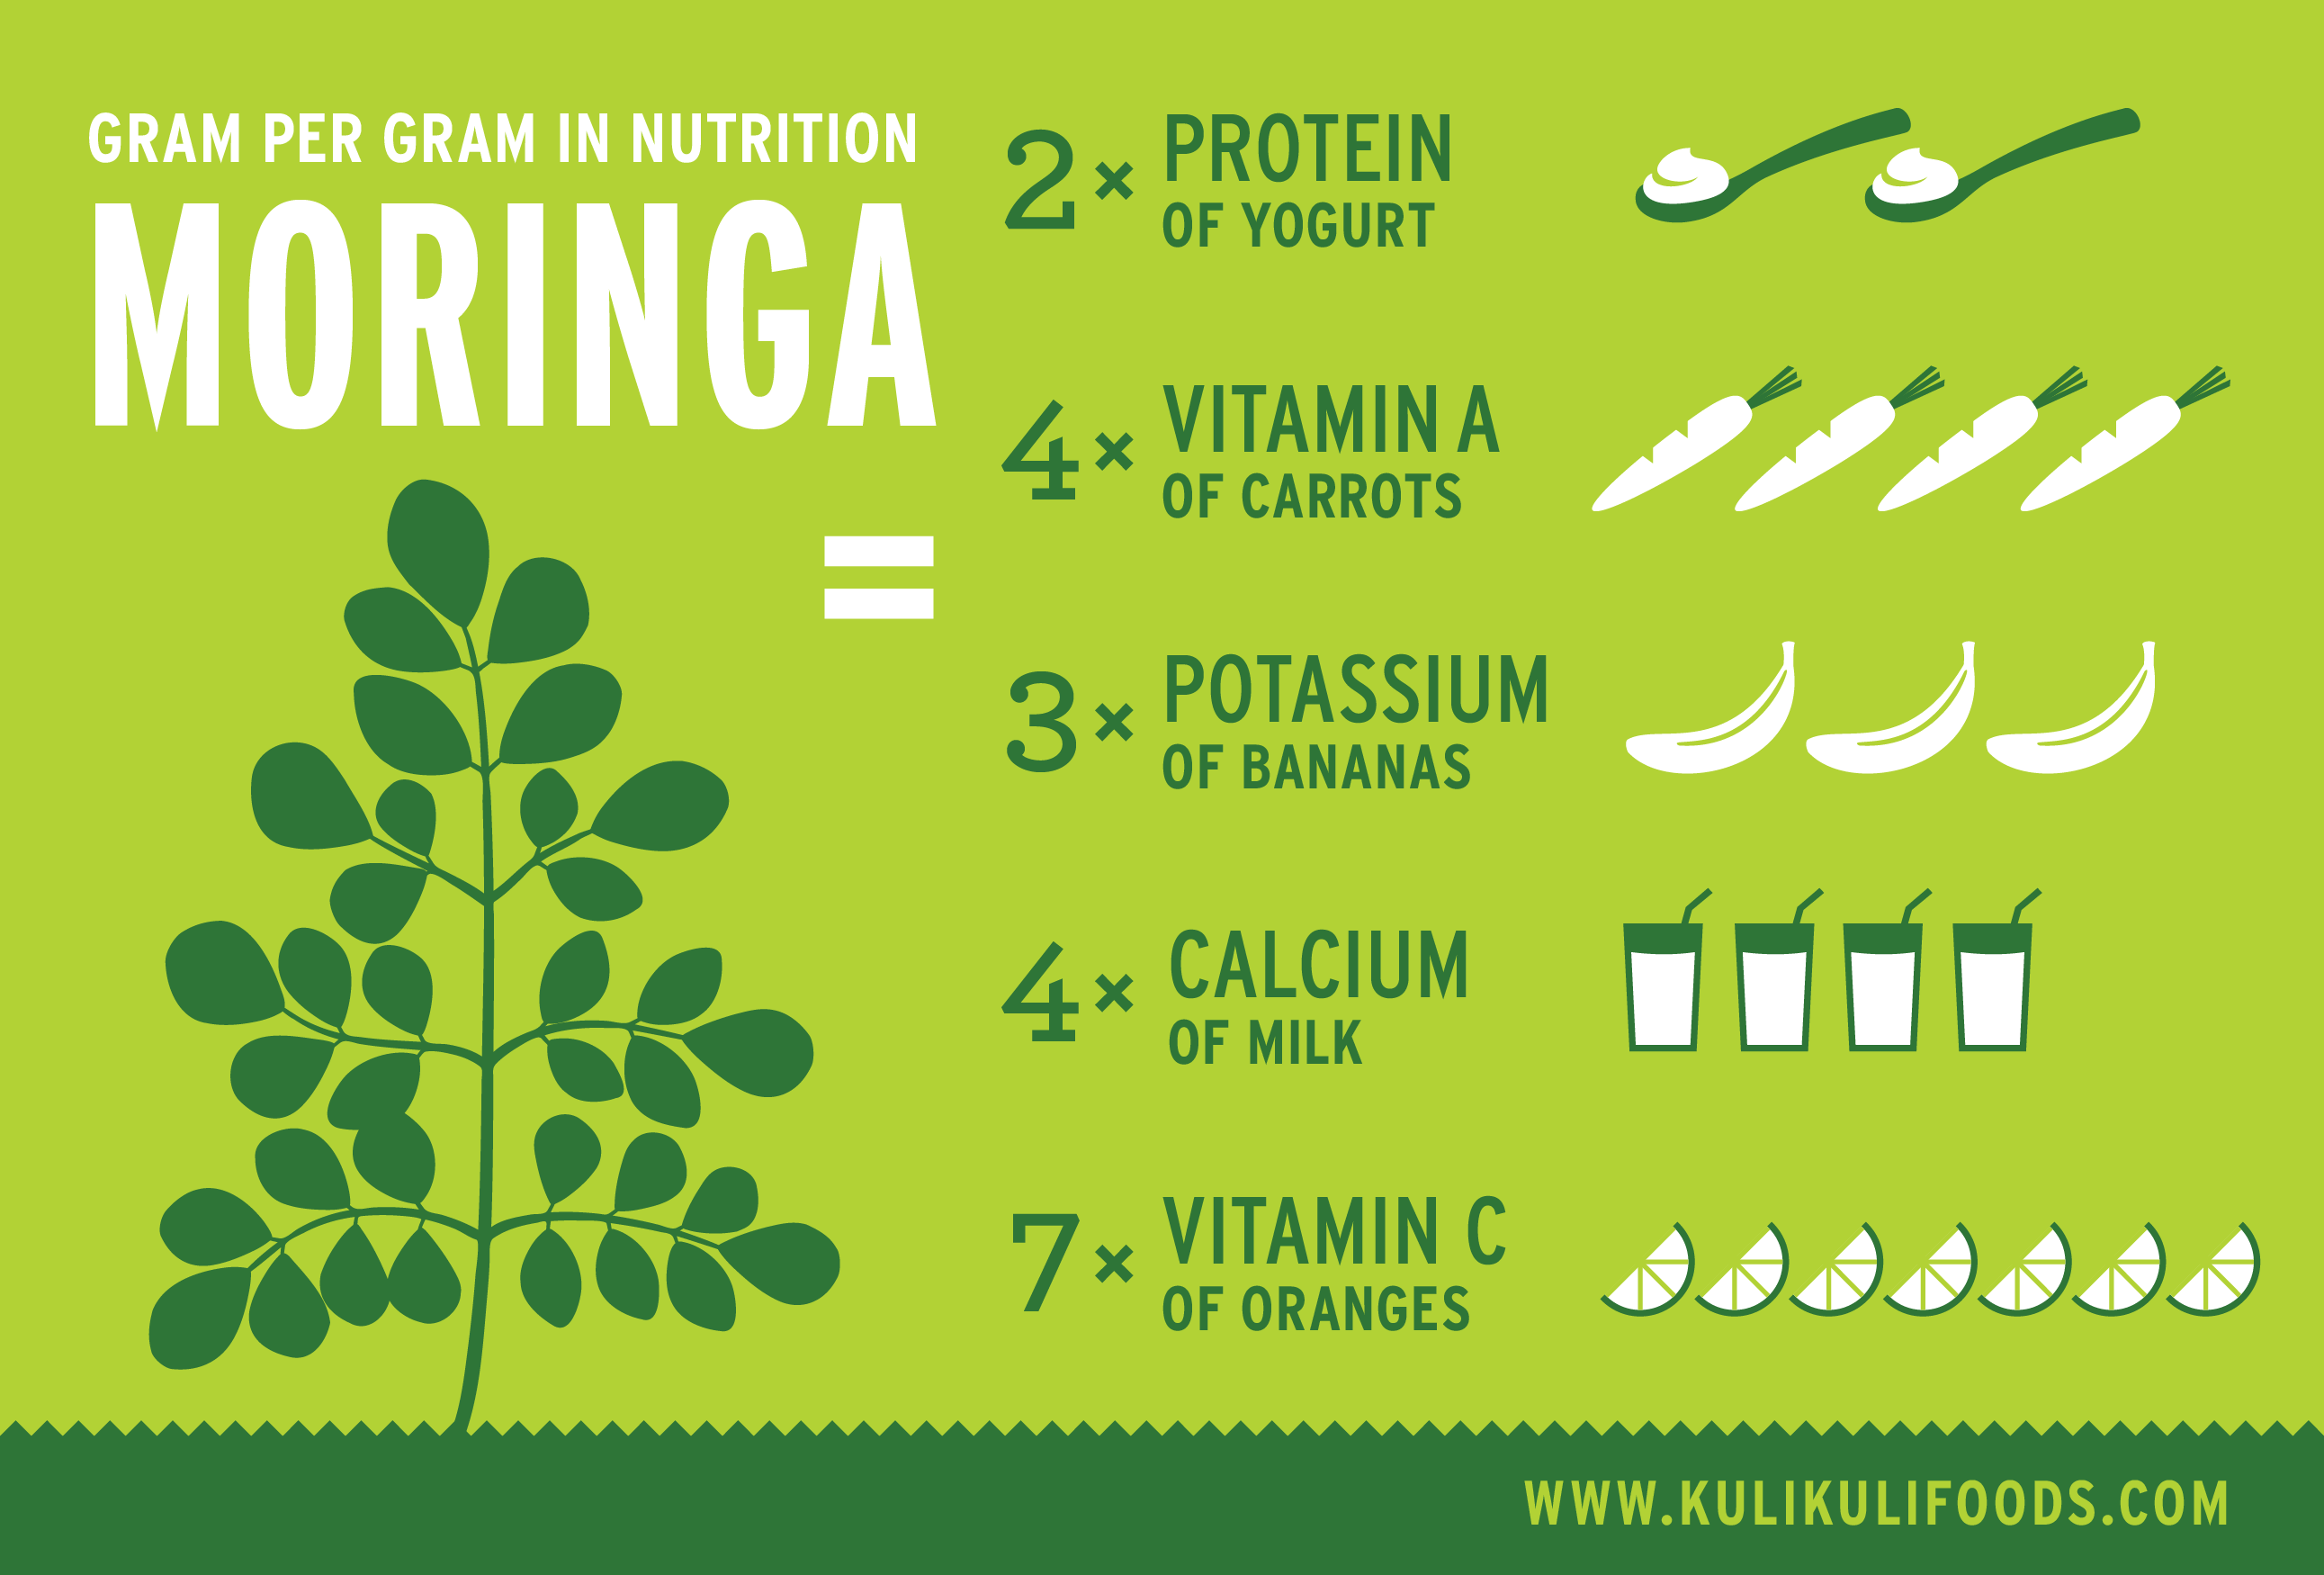 10 reasons to eat moringa everyday - kuli kuli foods